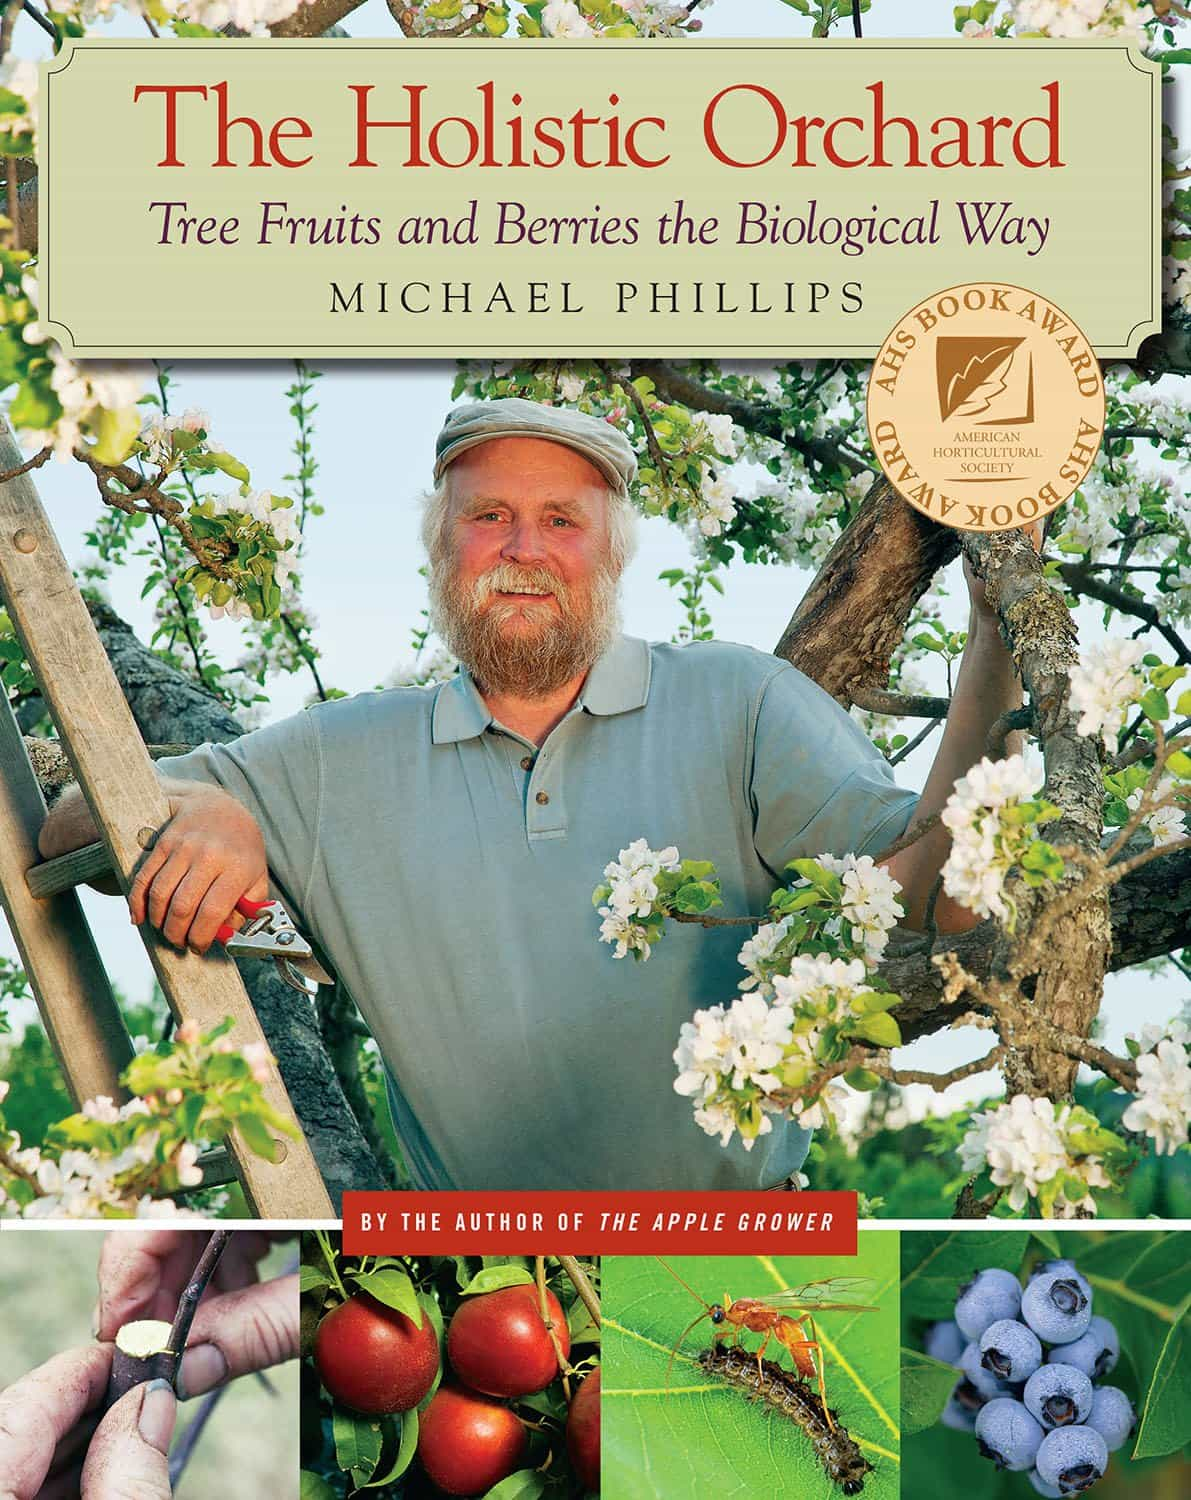 We follow organic orchardist Michael Phillips' Holistic Orchard Spray for trees in need.